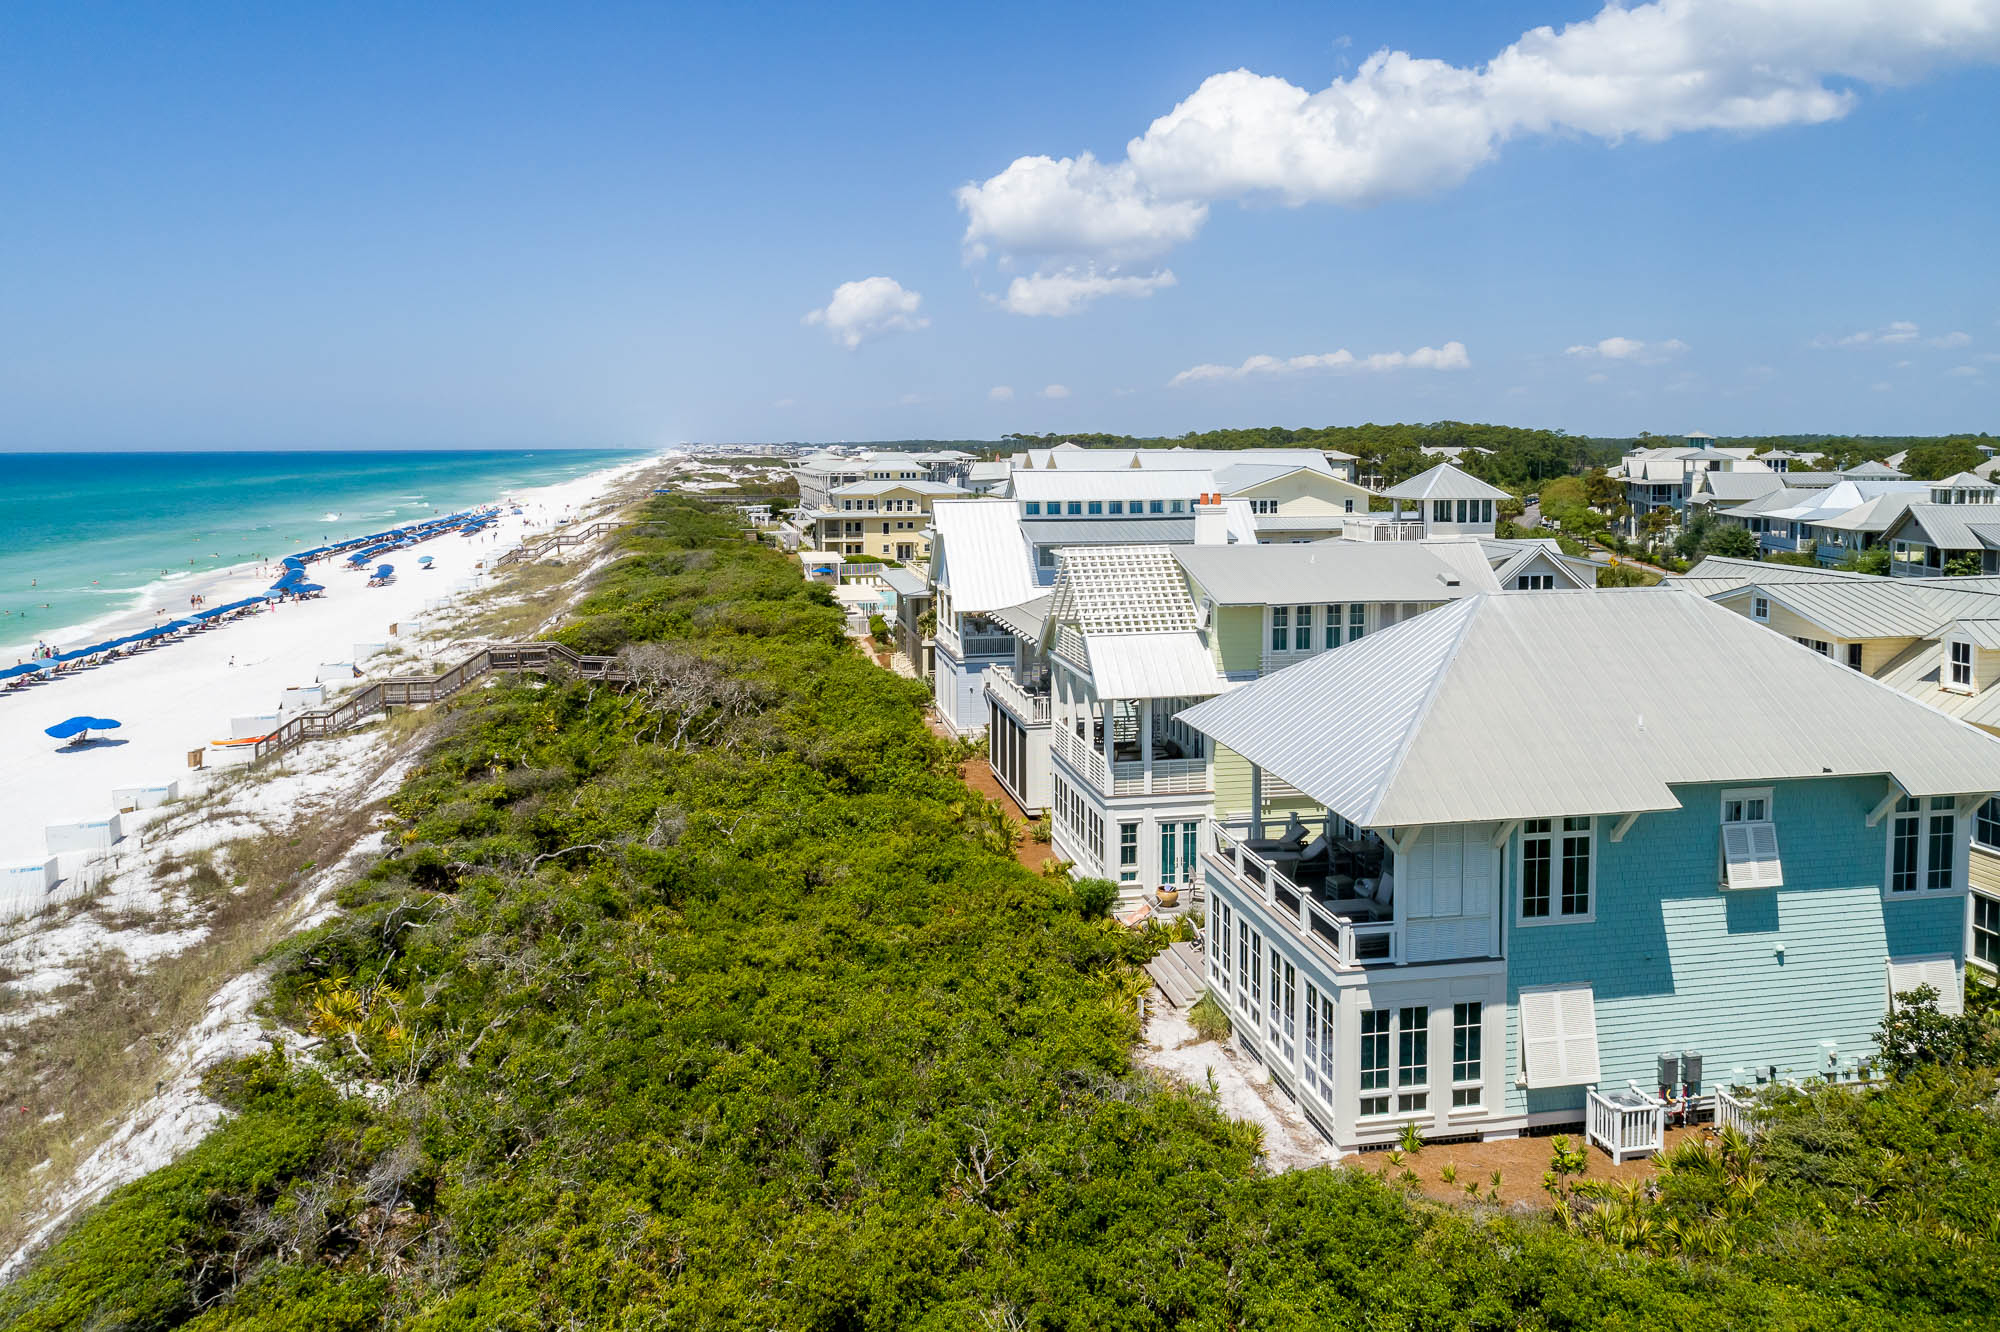 For a beachfront stay for a larger group, look no further than this charming rental. Second Sandbar is one of few Gulf-front rentals homes in the area, with a color palette that ties the interior (and the aqua exterior) to its surroundings. This house sle